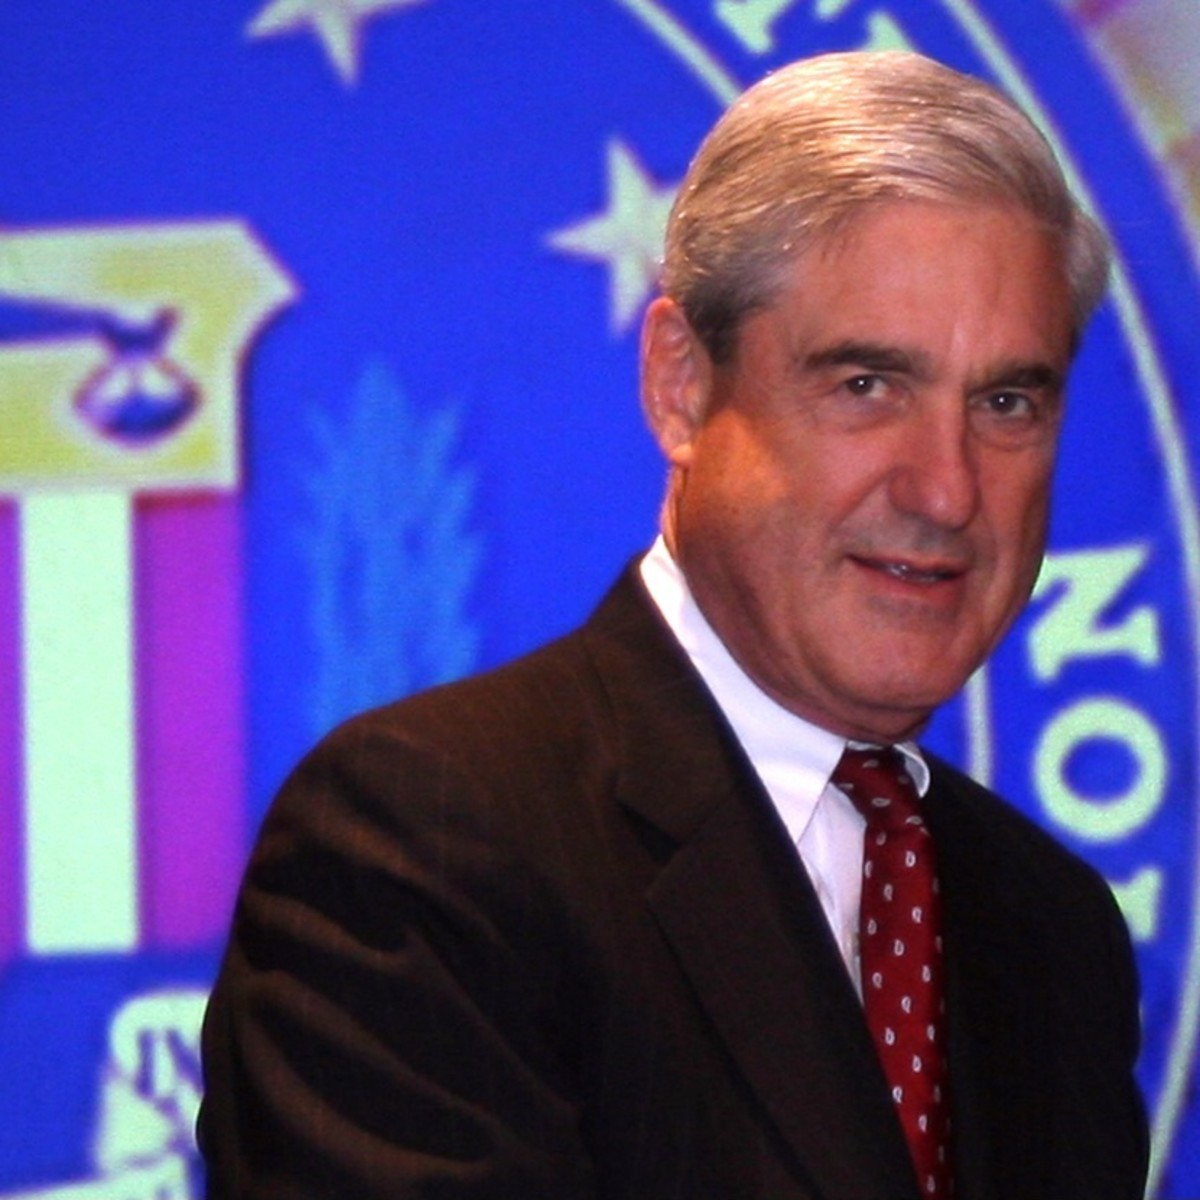 Special Counsel Investigating President Trump: What Is The 'Mueller Report'?